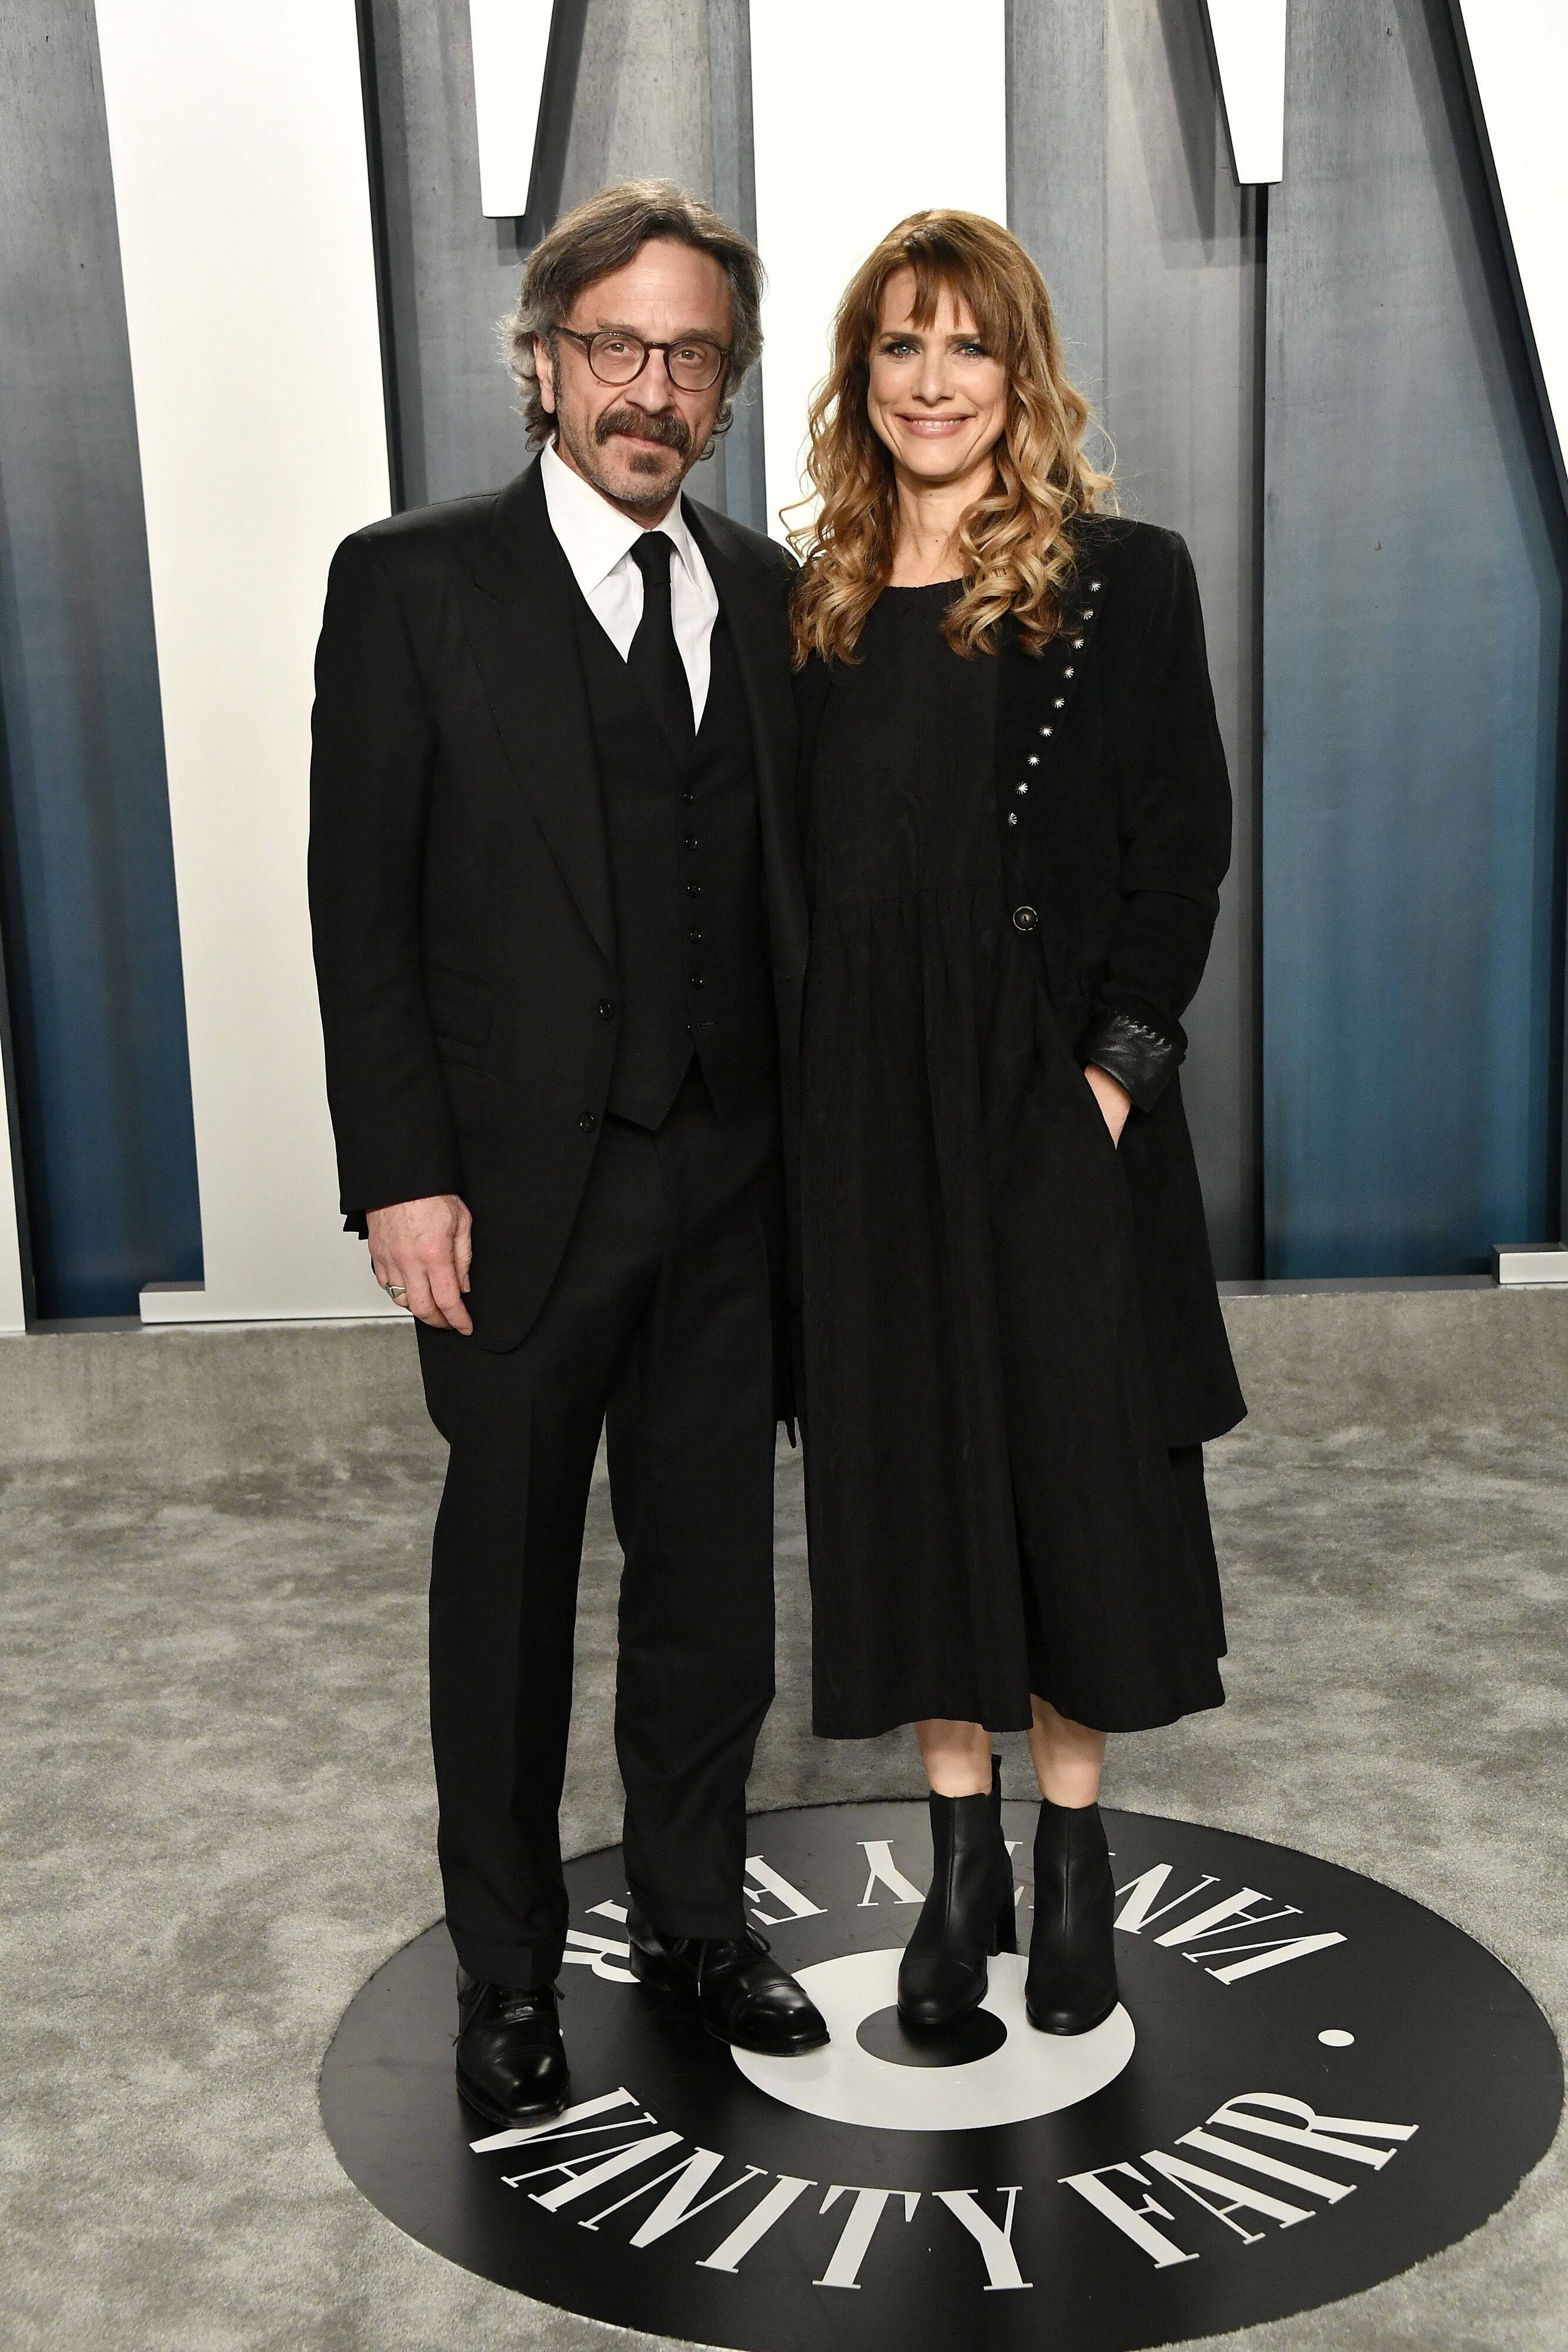 Marc Maron and Lynn Shelton at the Vanity Fair Oscar Party on February 09, 2020 in Beverly Hills, California | Photo: Getty Images